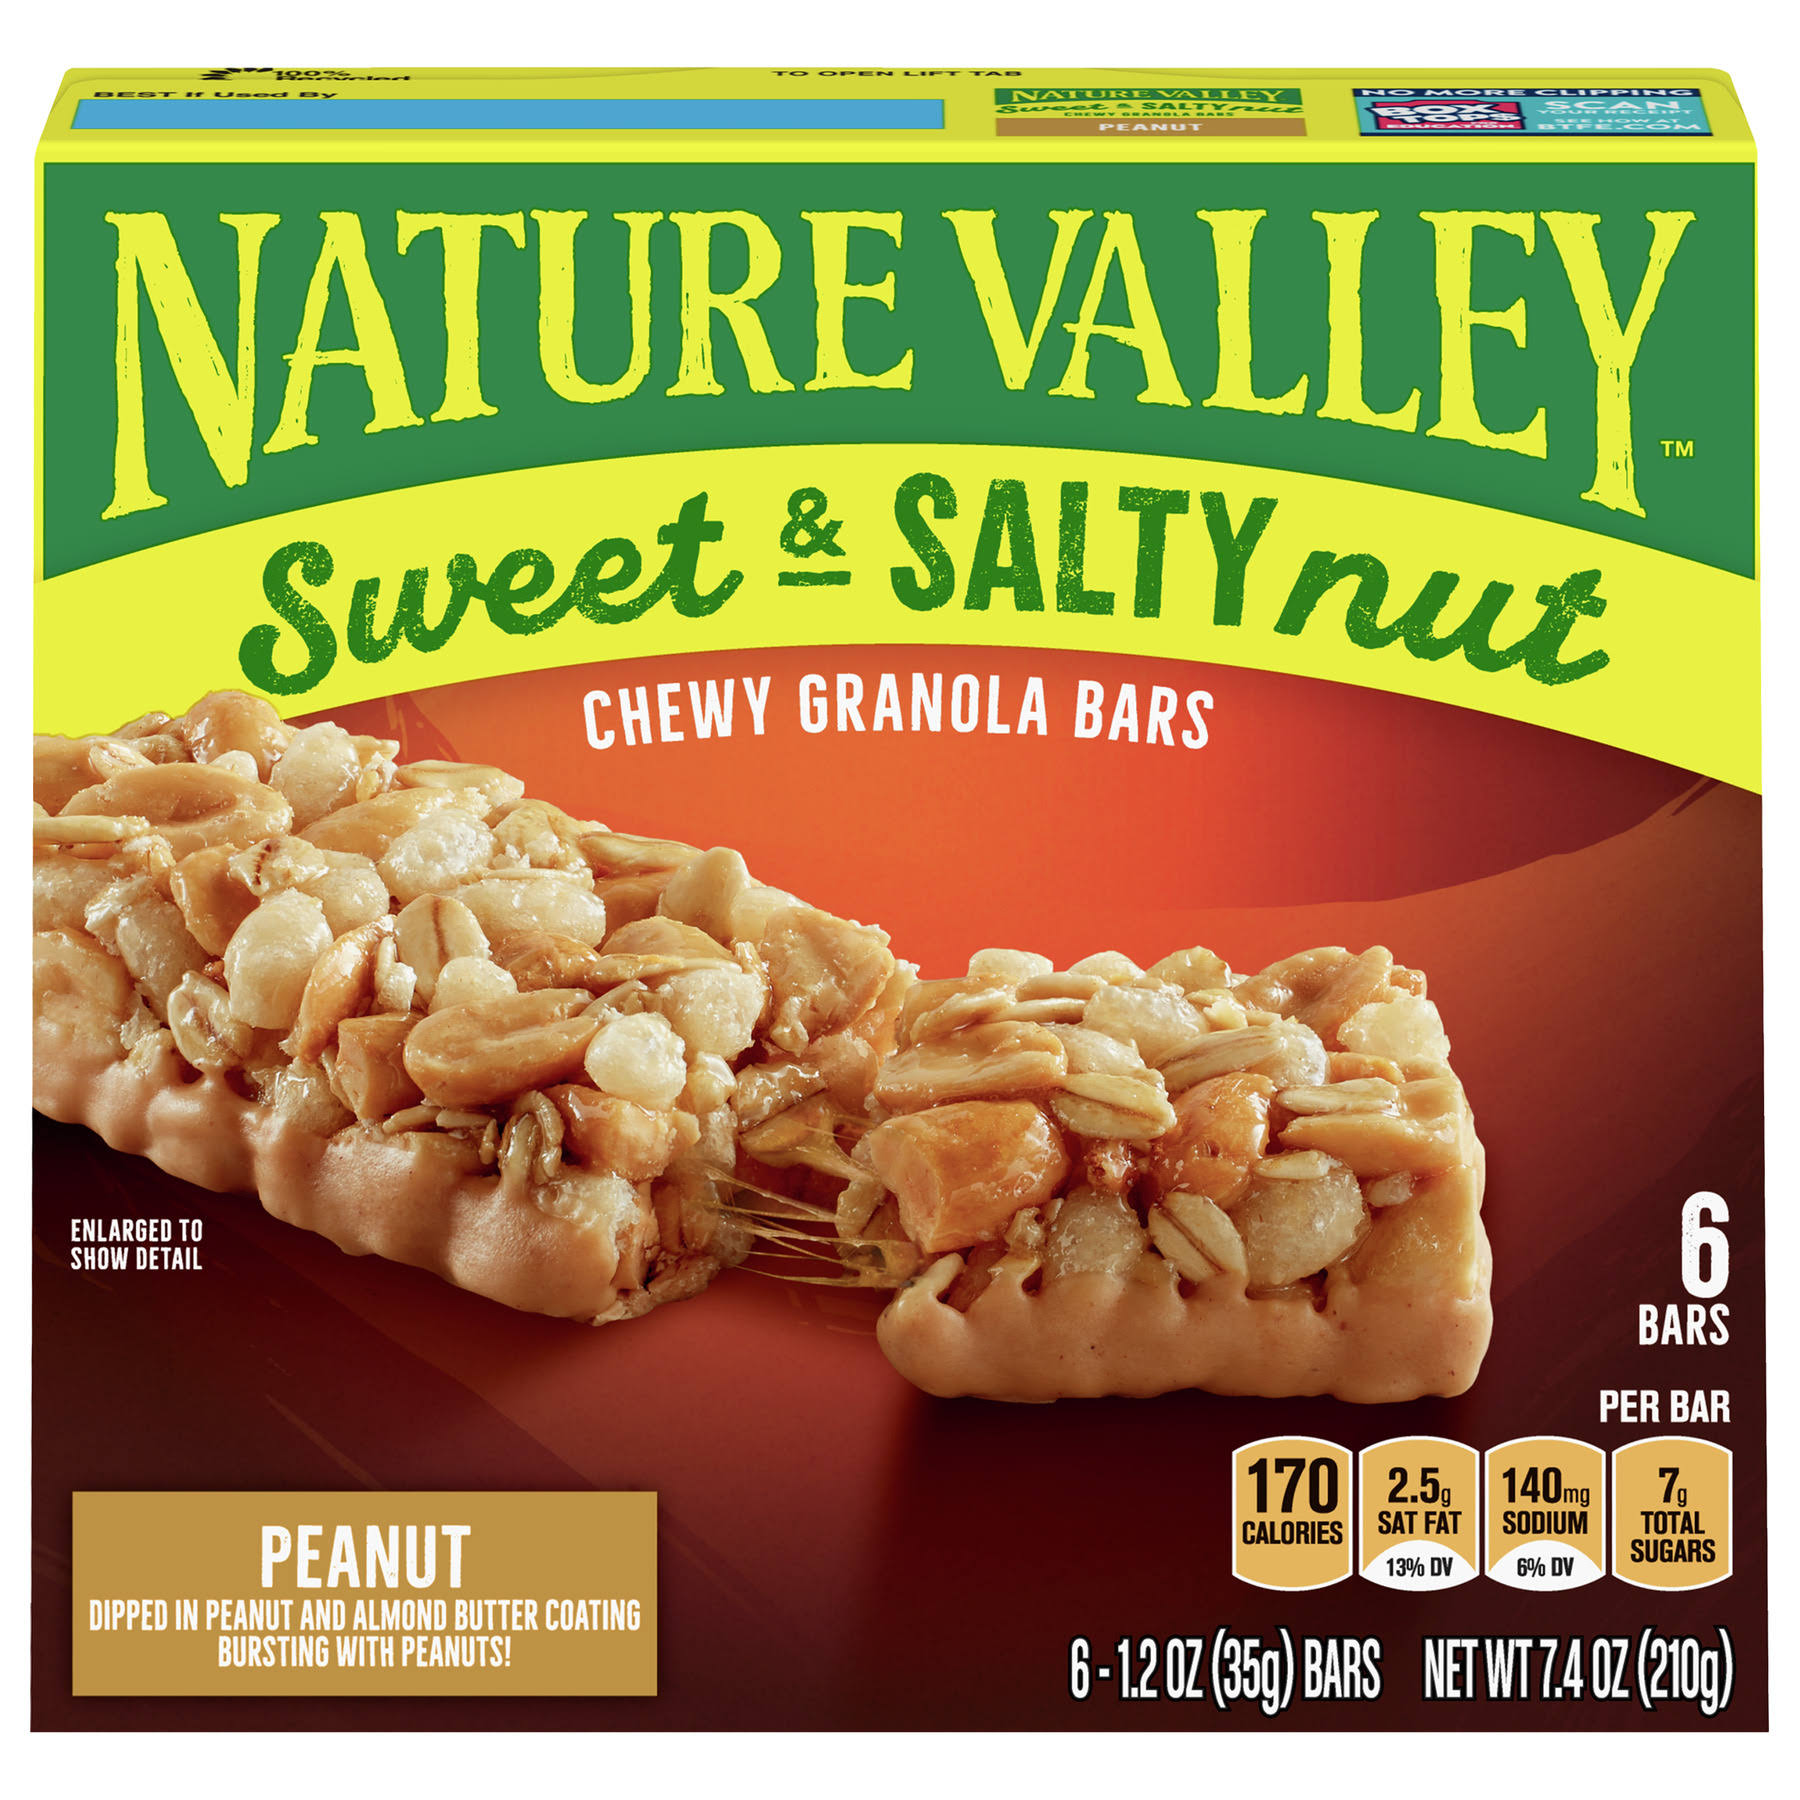 Nature Valley Sweet and Salty Nut Peanut Granola Bar - 1.2oz, 6pk